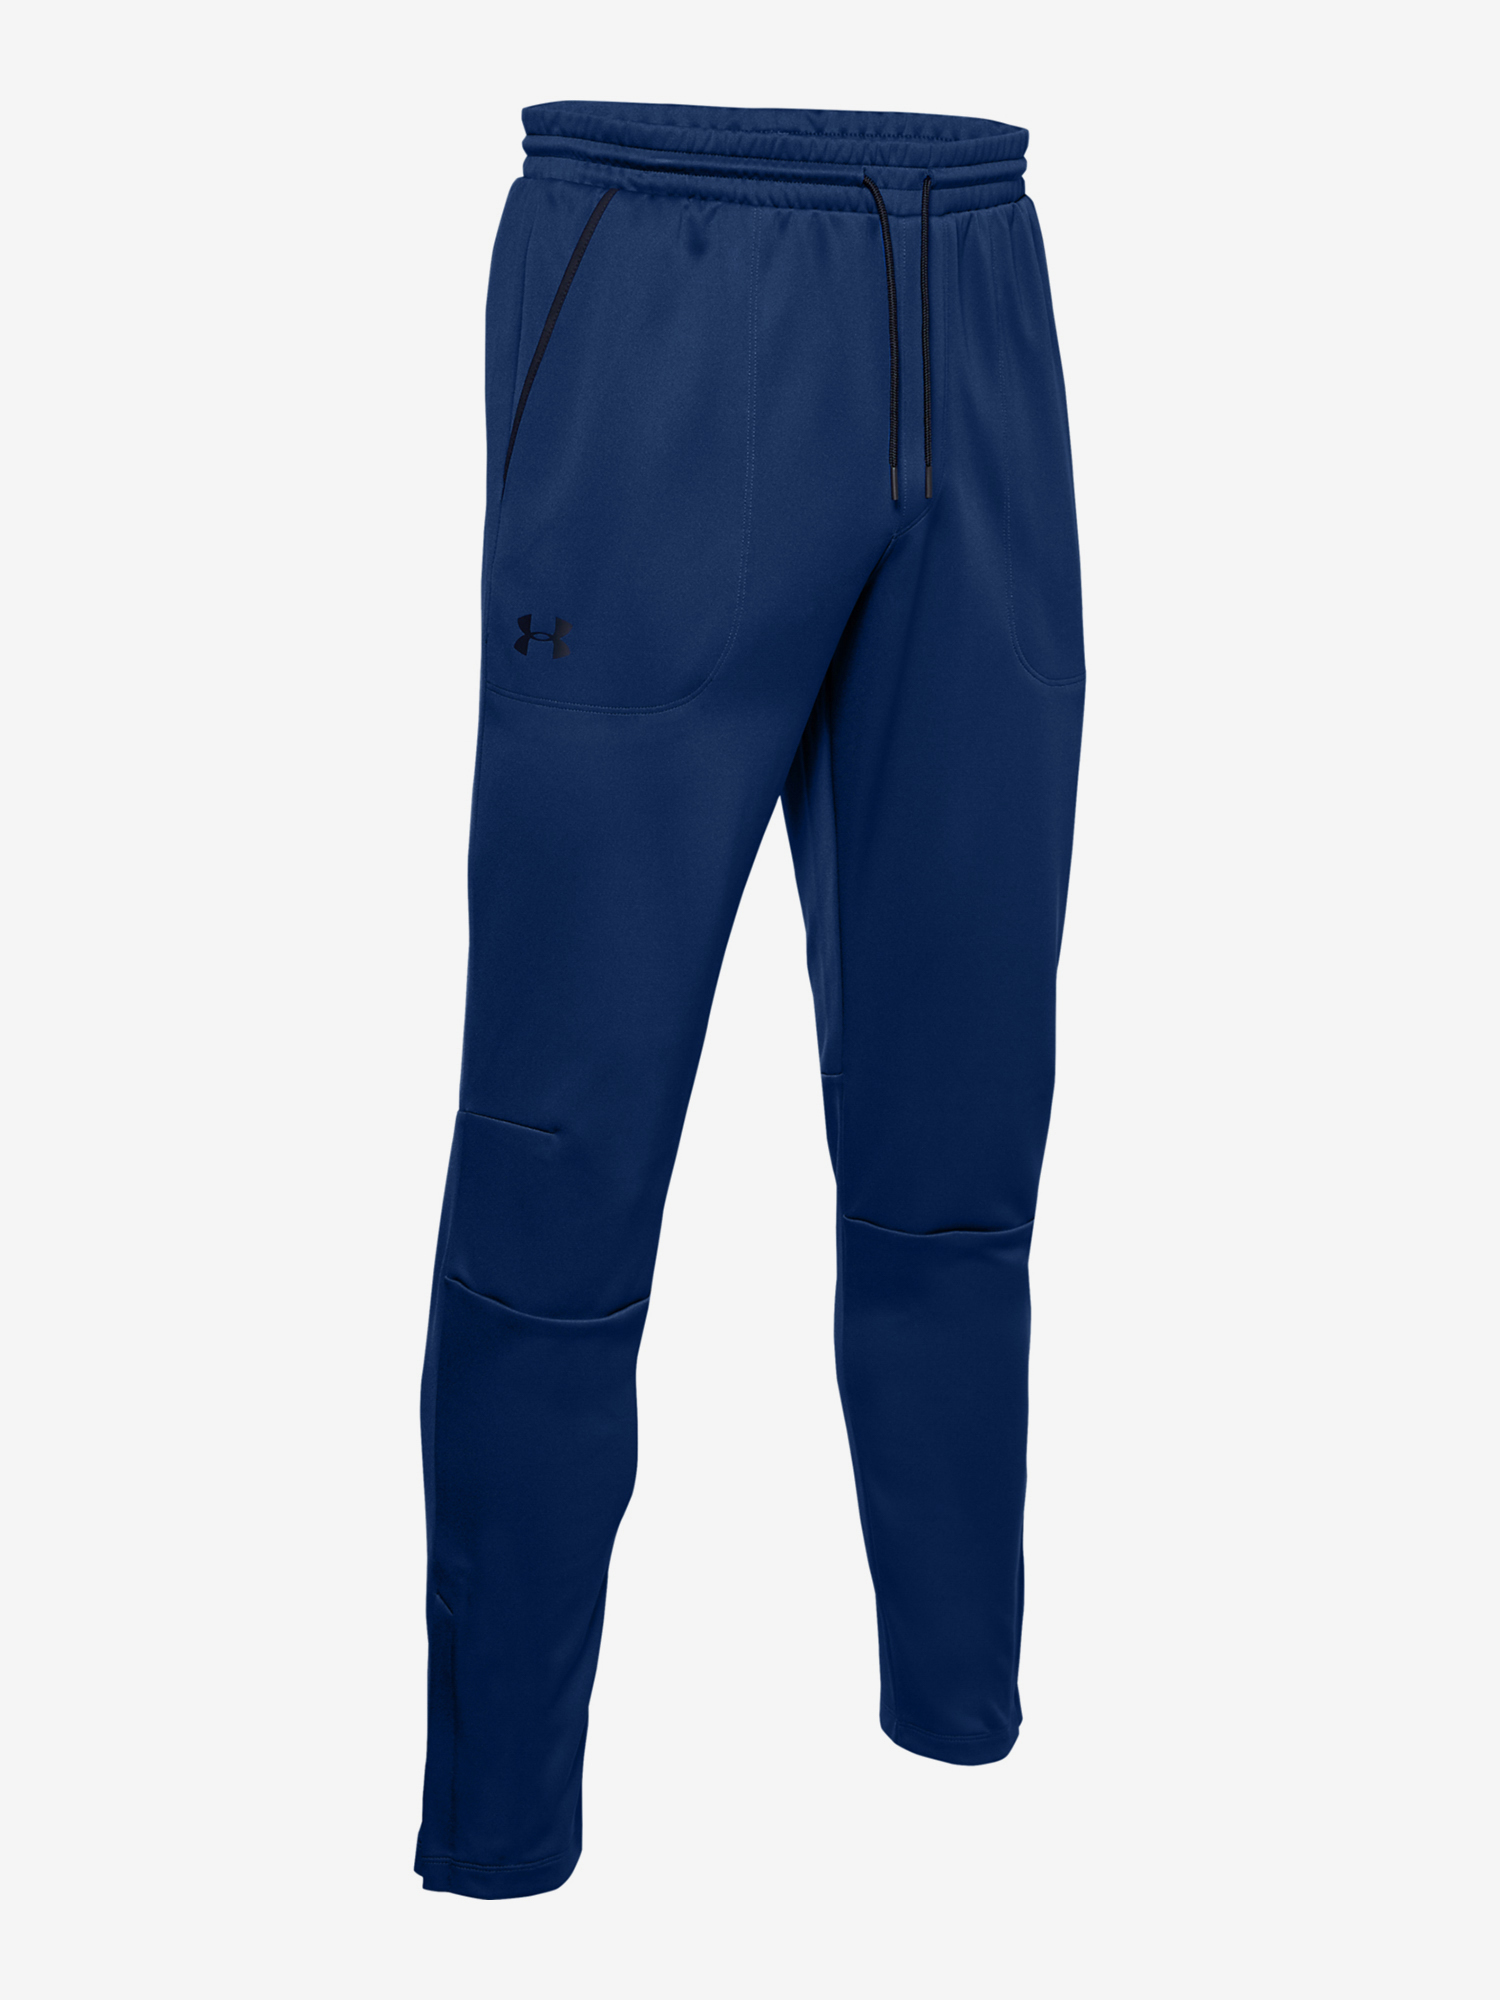 Tepláky Under Armour MK1 Warmup Pant-BLU (3)